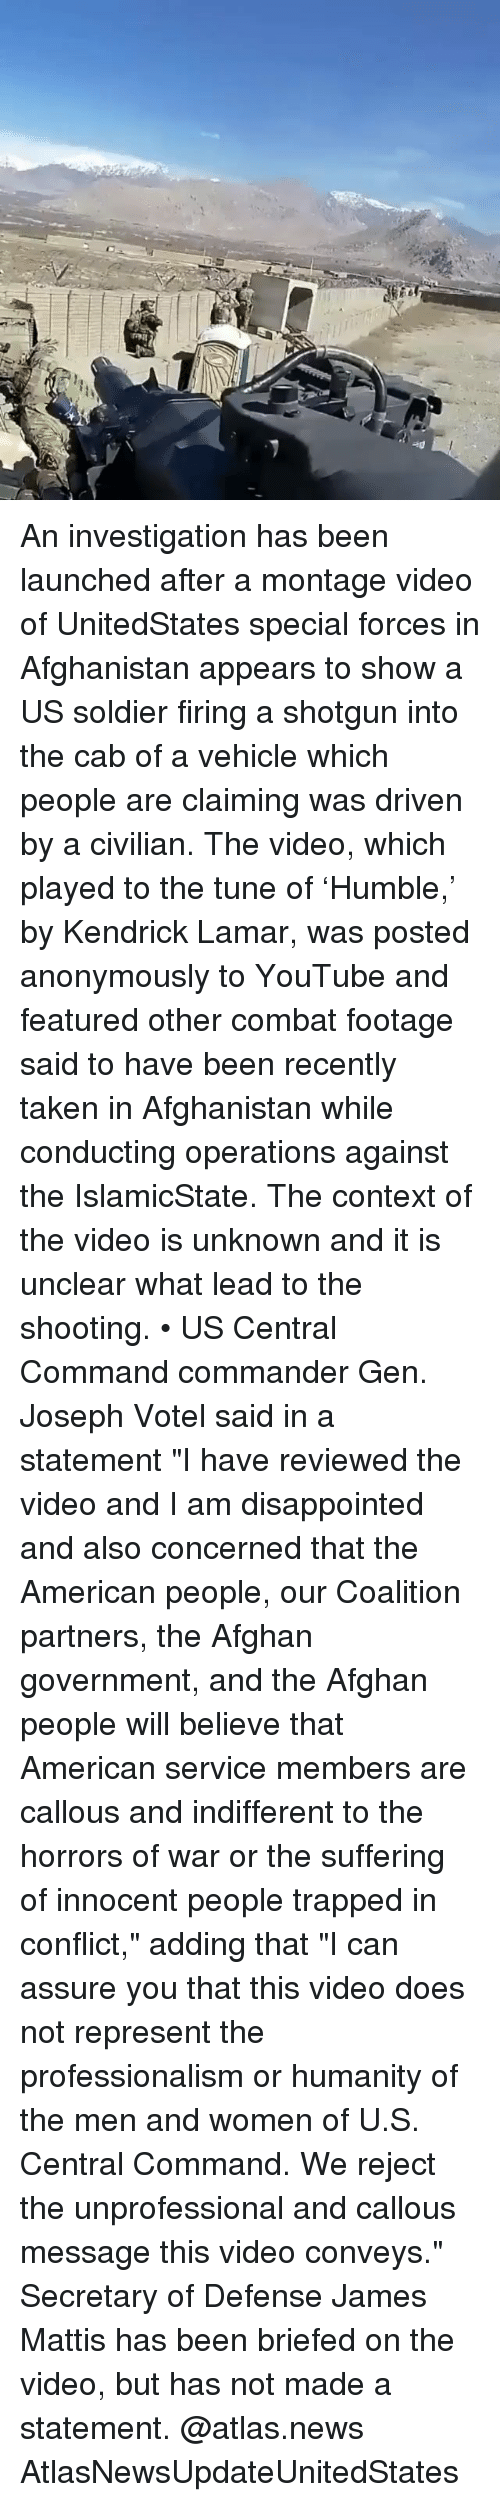 "Disappointed, Kendrick Lamar, and Memes: An investigation has been launched after a montage video of UnitedStates special forces in Afghanistan appears to show a US soldier firing a shotgun into the cab of a vehicle which people are claiming was driven by a civilian. The video, which played to the tune of 'Humble,' by Kendrick Lamar, was posted anonymously to YouTube and featured other combat footage said to have been recently taken in Afghanistan while conducting operations against the IslamicState. The context of the video is unknown and it is unclear what lead to the shooting. • US Central Command commander Gen. Joseph Votel said in a statement ""I have reviewed the video and I am disappointed and also concerned that the American people, our Coalition partners, the Afghan government, and the Afghan people will believe that American service members are callous and indifferent to the horrors of war or the suffering of innocent people trapped in conflict,"" adding that ""I can assure you that this video does not represent the professionalism or humanity of the men and women of U.S. Central Command. We reject the unprofessional and callous message this video conveys."" Secretary of Defense James Mattis has been briefed on the video, but has not made a statement. @atlas.news AtlasNewsUpdateUnitedStates"